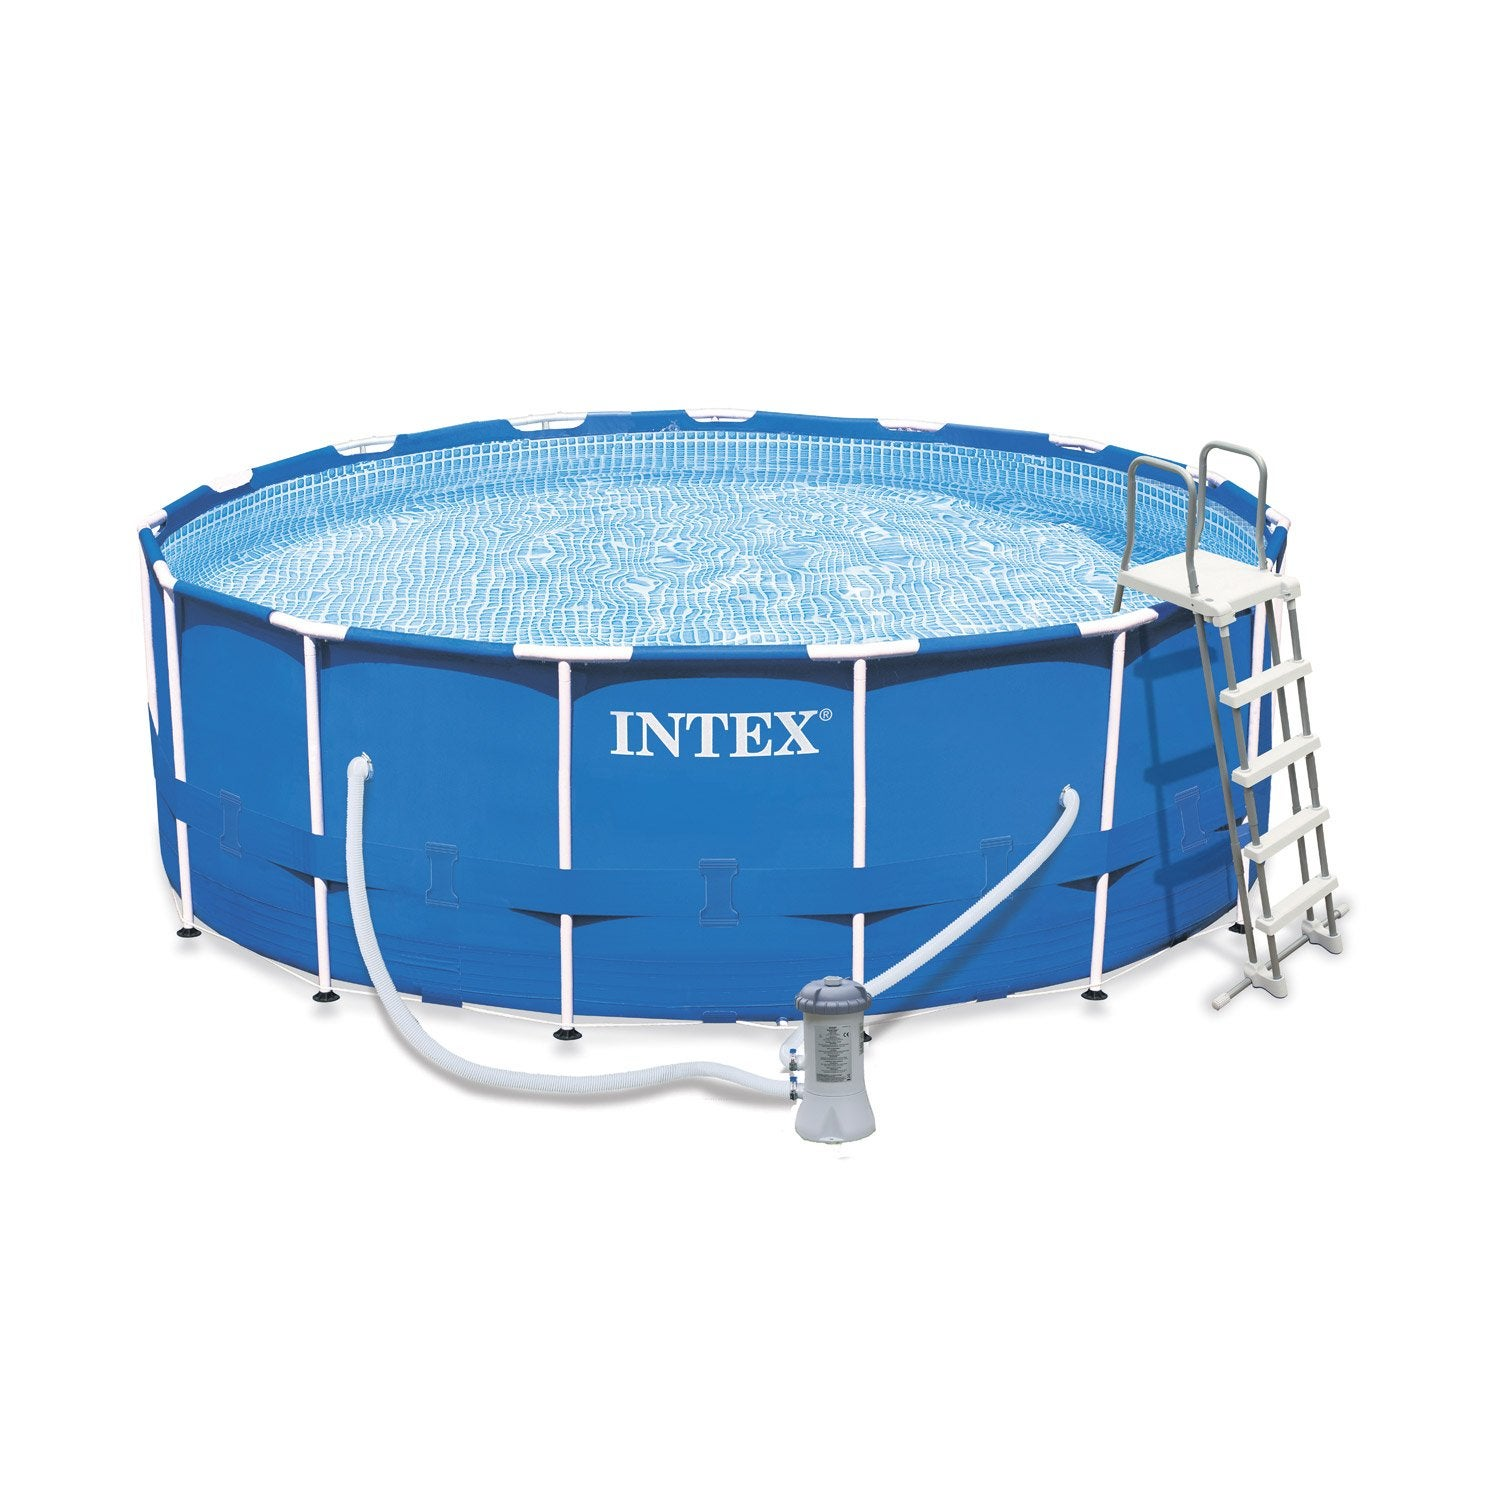 Piscine hors sol autoportante tubulaire metal frame intex - Piscine hors sol metal ...